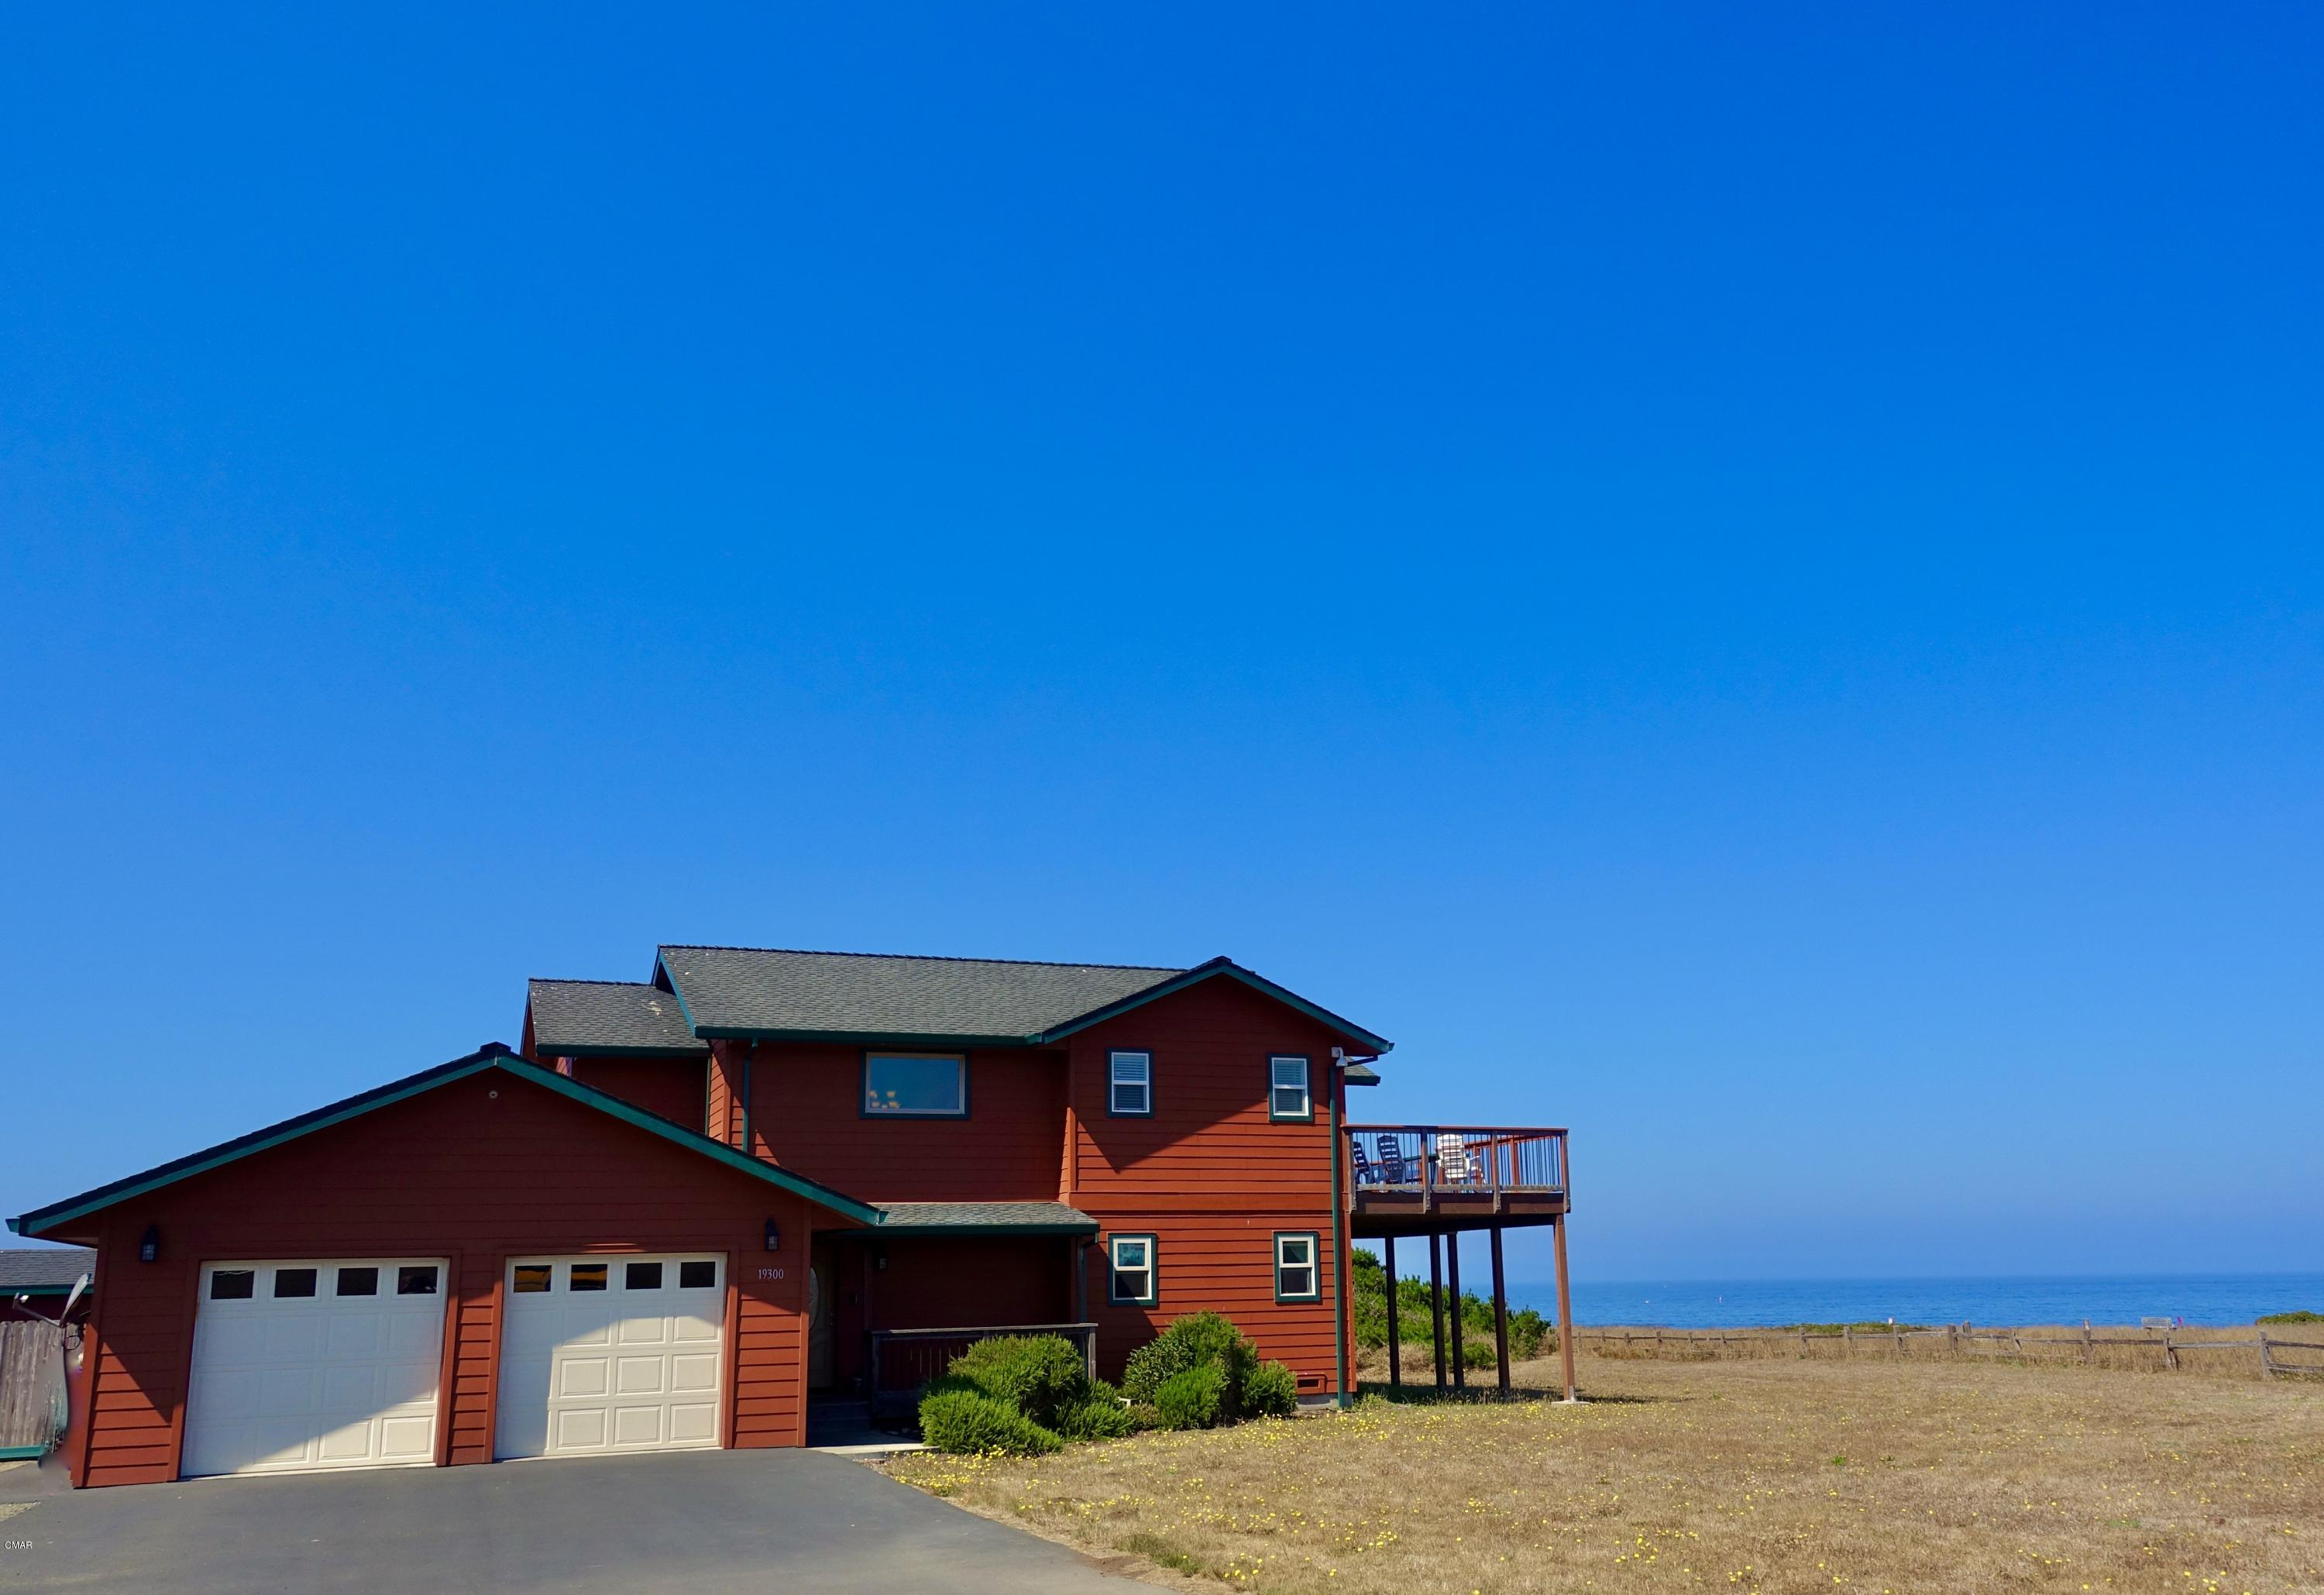 Rare offering in Fort Bragg has wonderful unobstructed ocean views only minutes from city amenities. A perfect marriage of ocean vistas and city convenience is found in this custom built 3 bdrm/3 bath home with office. Overlooking the mouth of the Noyo Harbor, watch migrating whales and fishing boats. Inside, find carefully chosen finishes such as floating bamboo floors, honed serpentine stone in the guest bath, granite kitchen counters, shaker ash cabinets and a lovely slipper tub next to a gas fireplace in the downstairs master. Practical features inc. a whole house alarm system with fire safe sensors, kitchen pantry and fenced area for dogs with a concrete perimeter. This perfect ''beach house'' has vacation rental potential. Or even better move to Ft. Bragg and live the dream full time